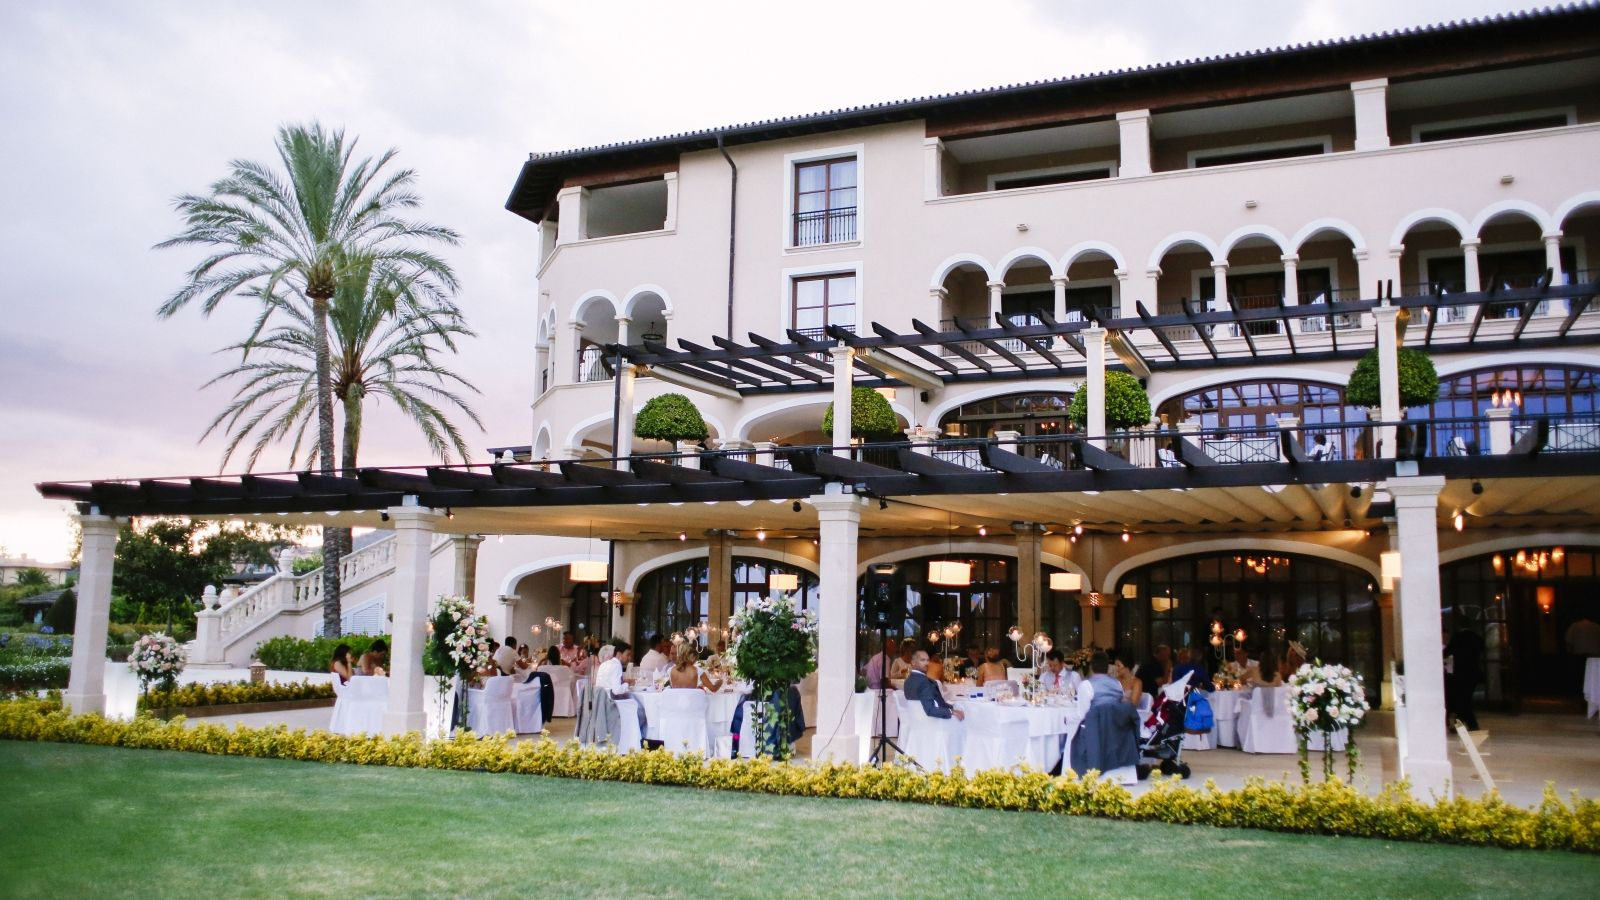 Outdoor wedding dinners at the St. Regis Mardavall Majorca